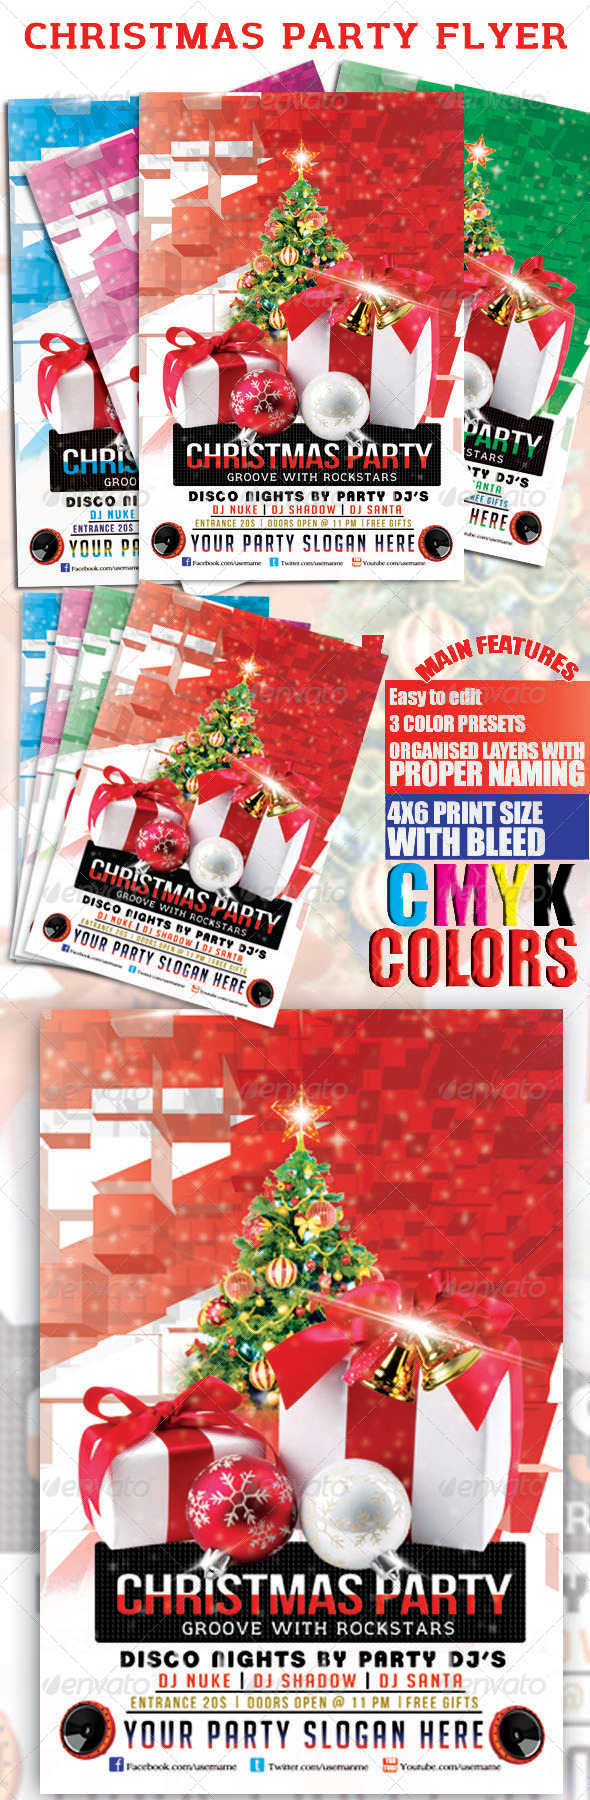 GraphicRiver Christmas Party Flyer 6419673